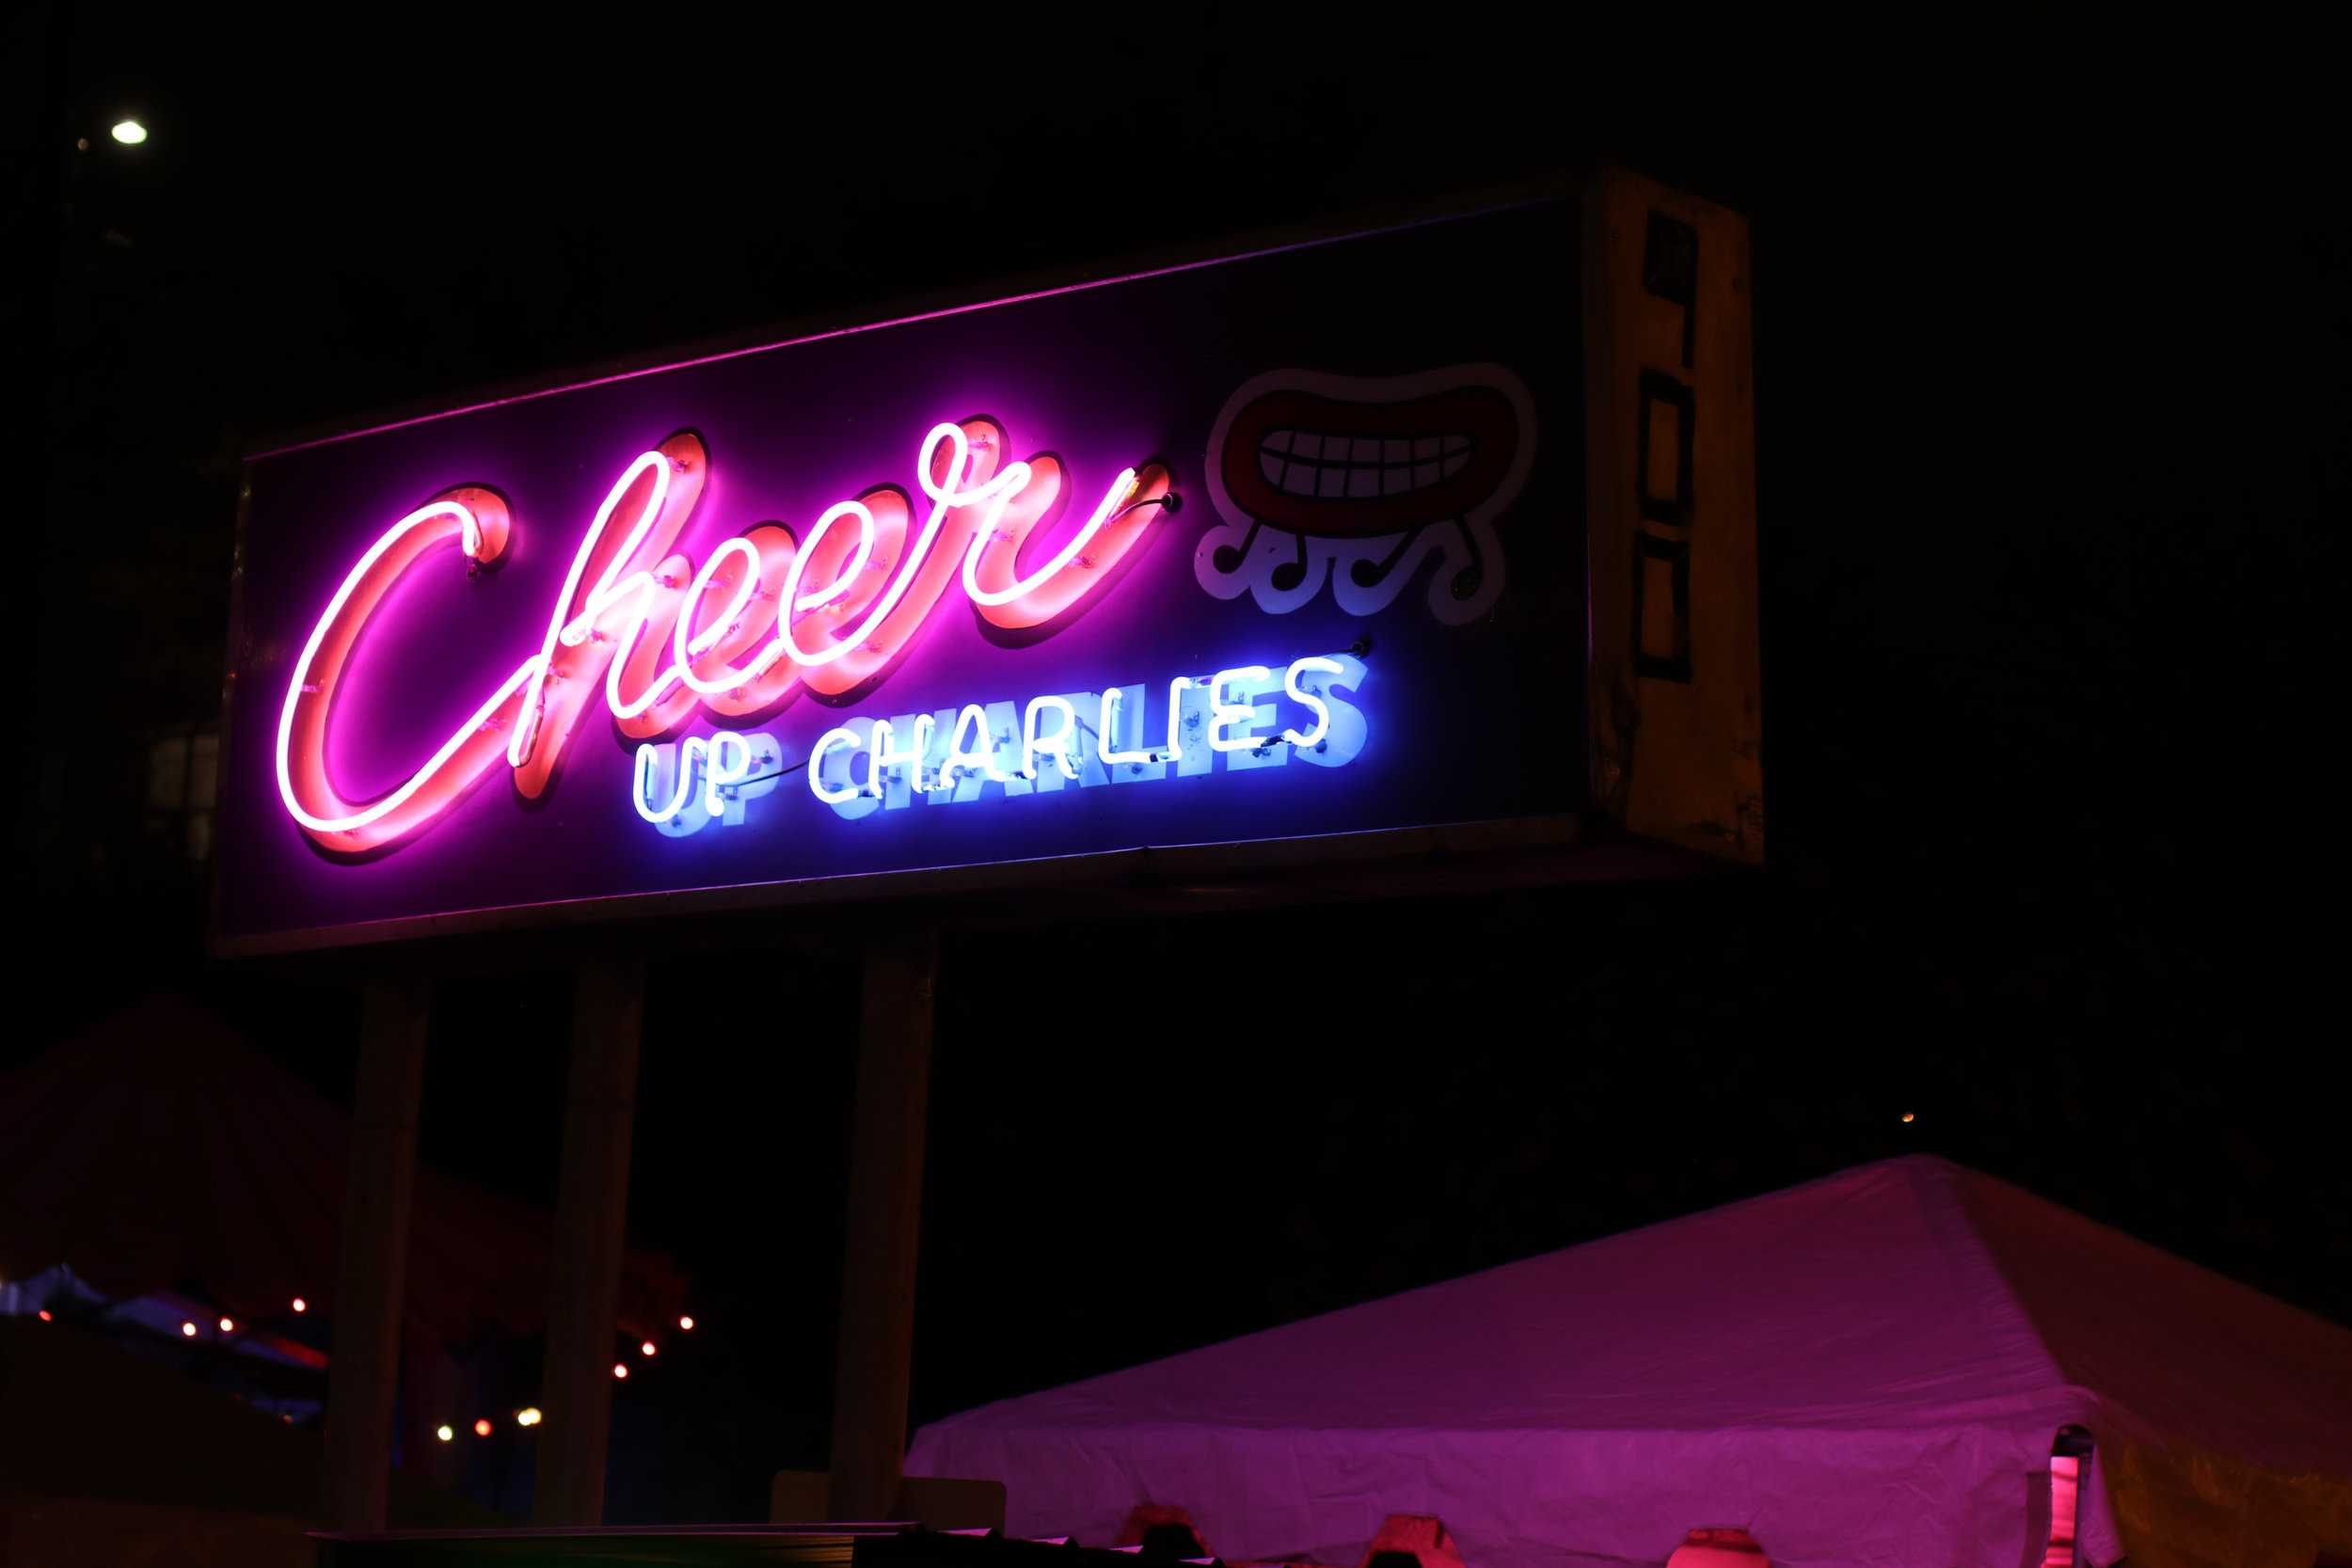 Cheer Up Charlies (900 Red River Streer) has been one of the best known gay bars in the city. It opened in the '80s as an art and music performance space and was a primary force in bringing queer artists in Austin to the mainstream during the '80s and '90s.